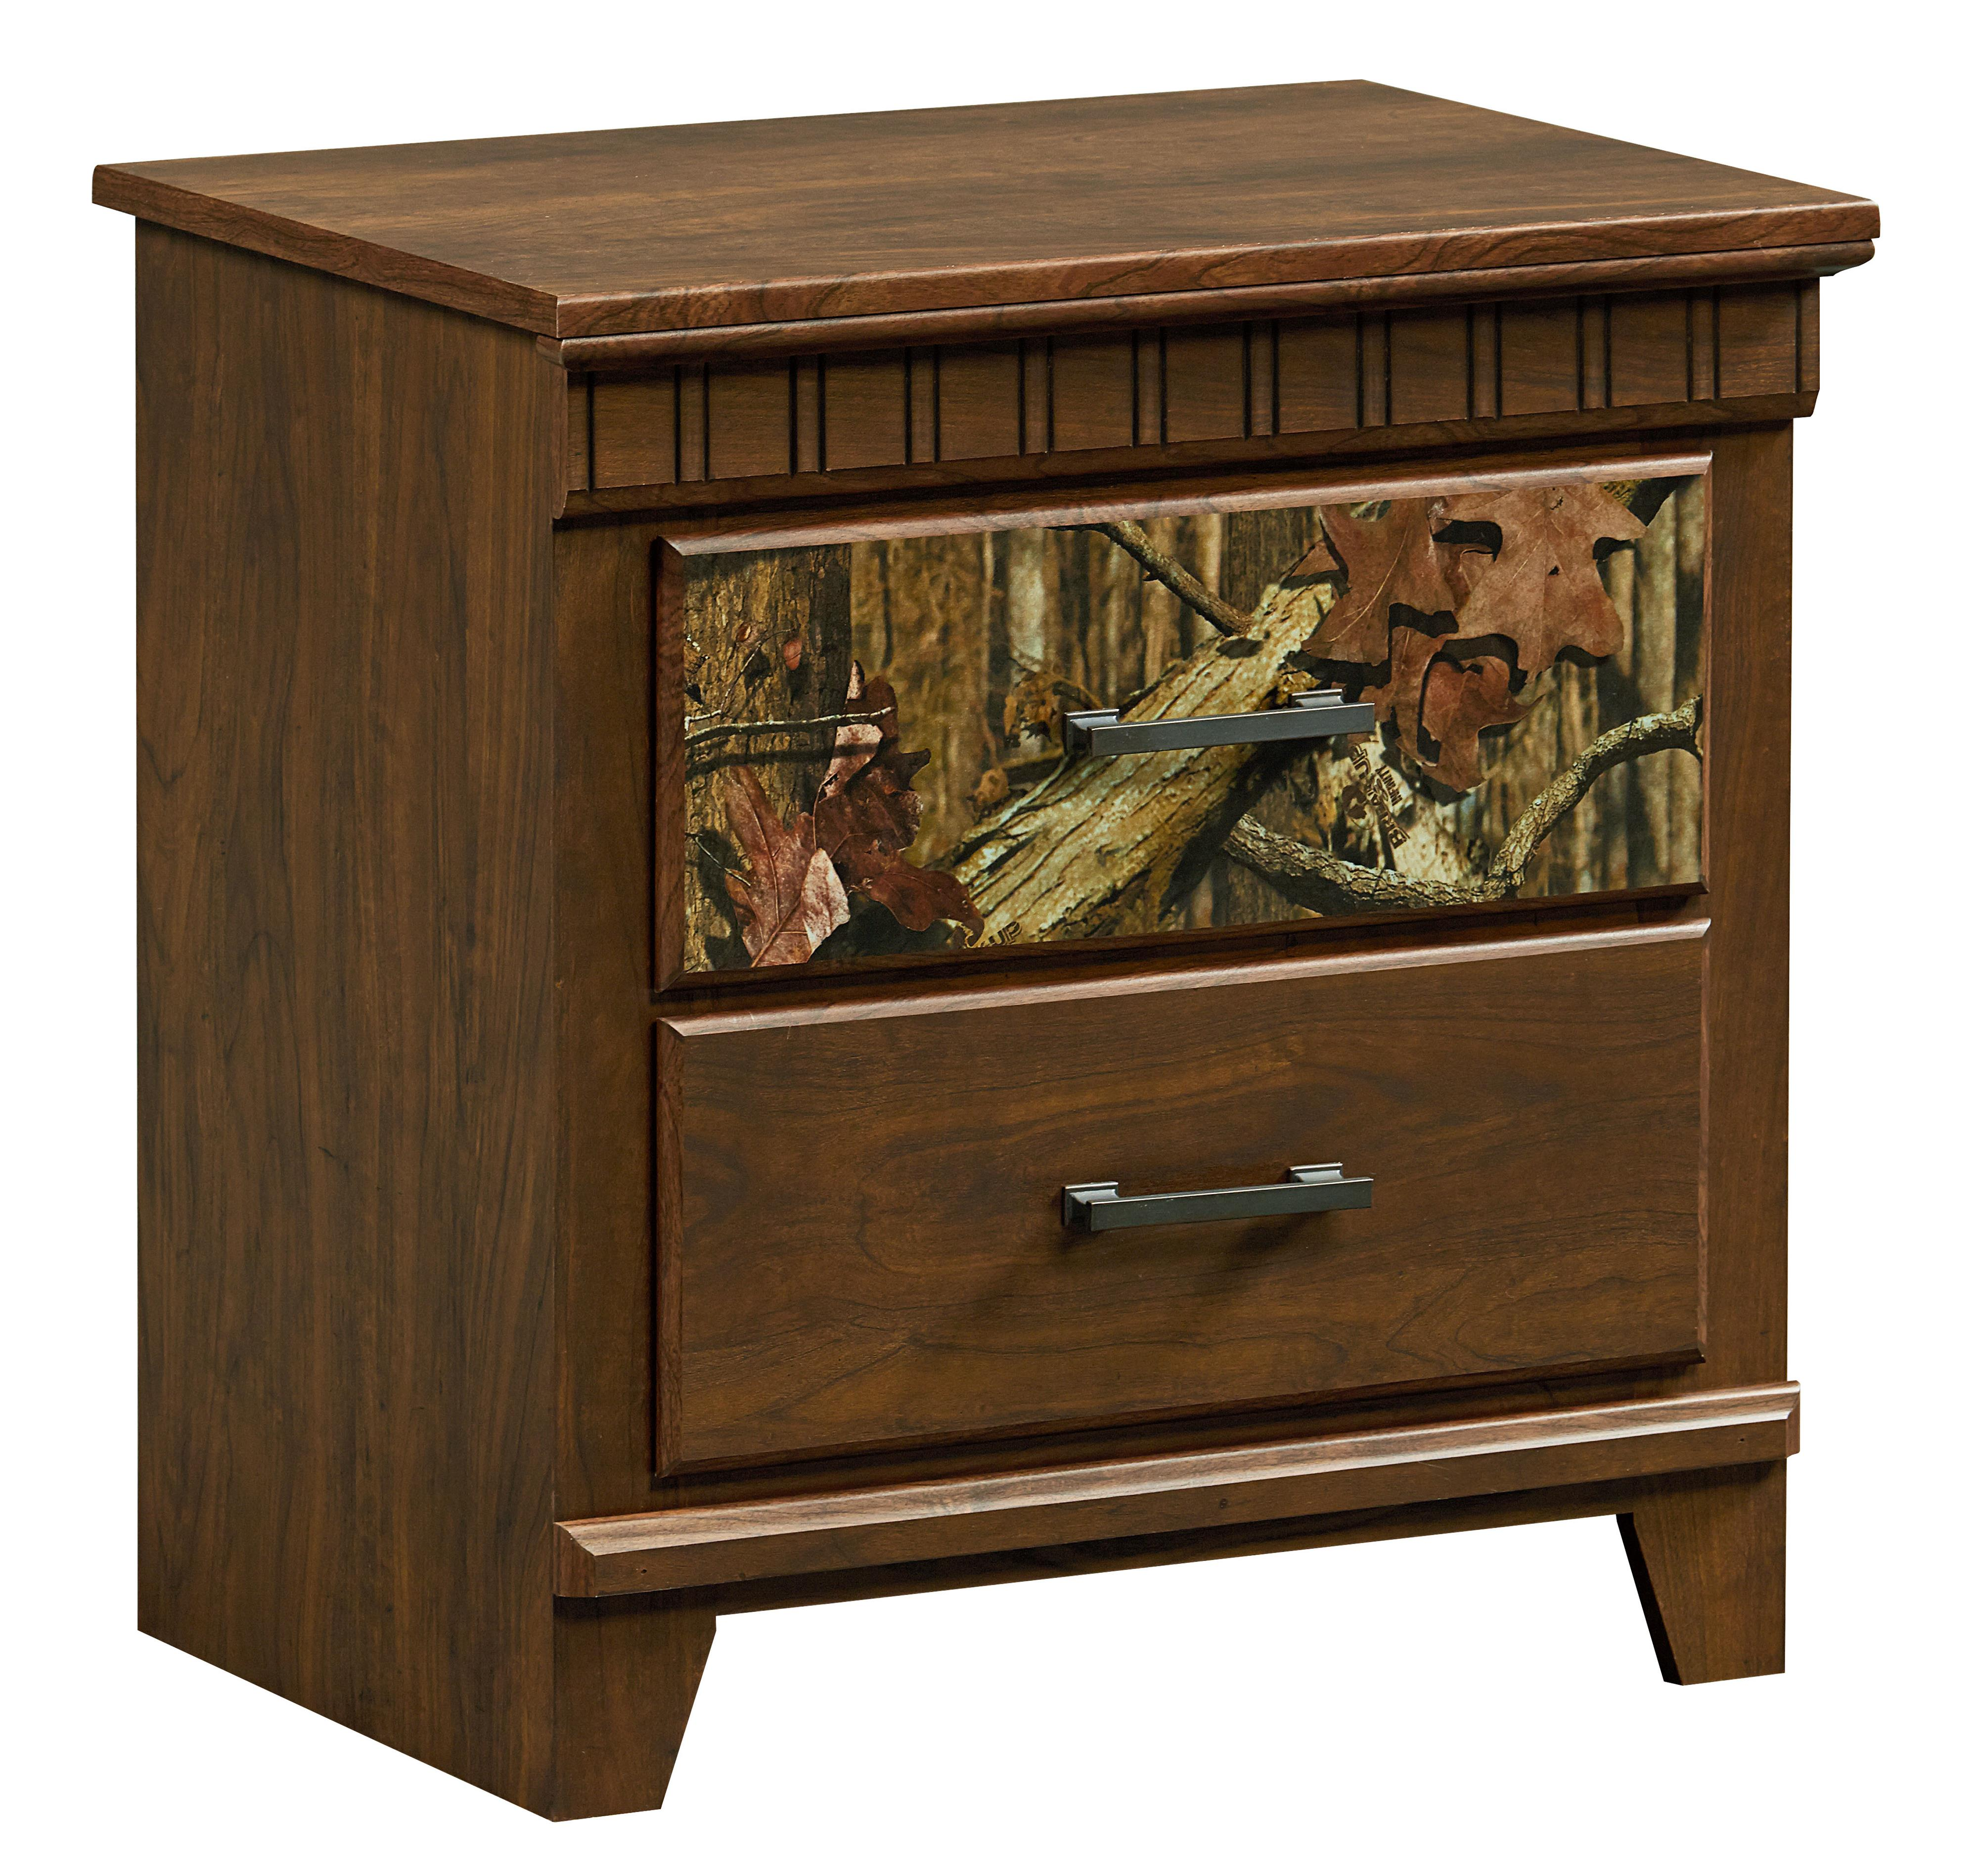 Standard Furniture Solitude Nightstand                              - Item Number: 52957